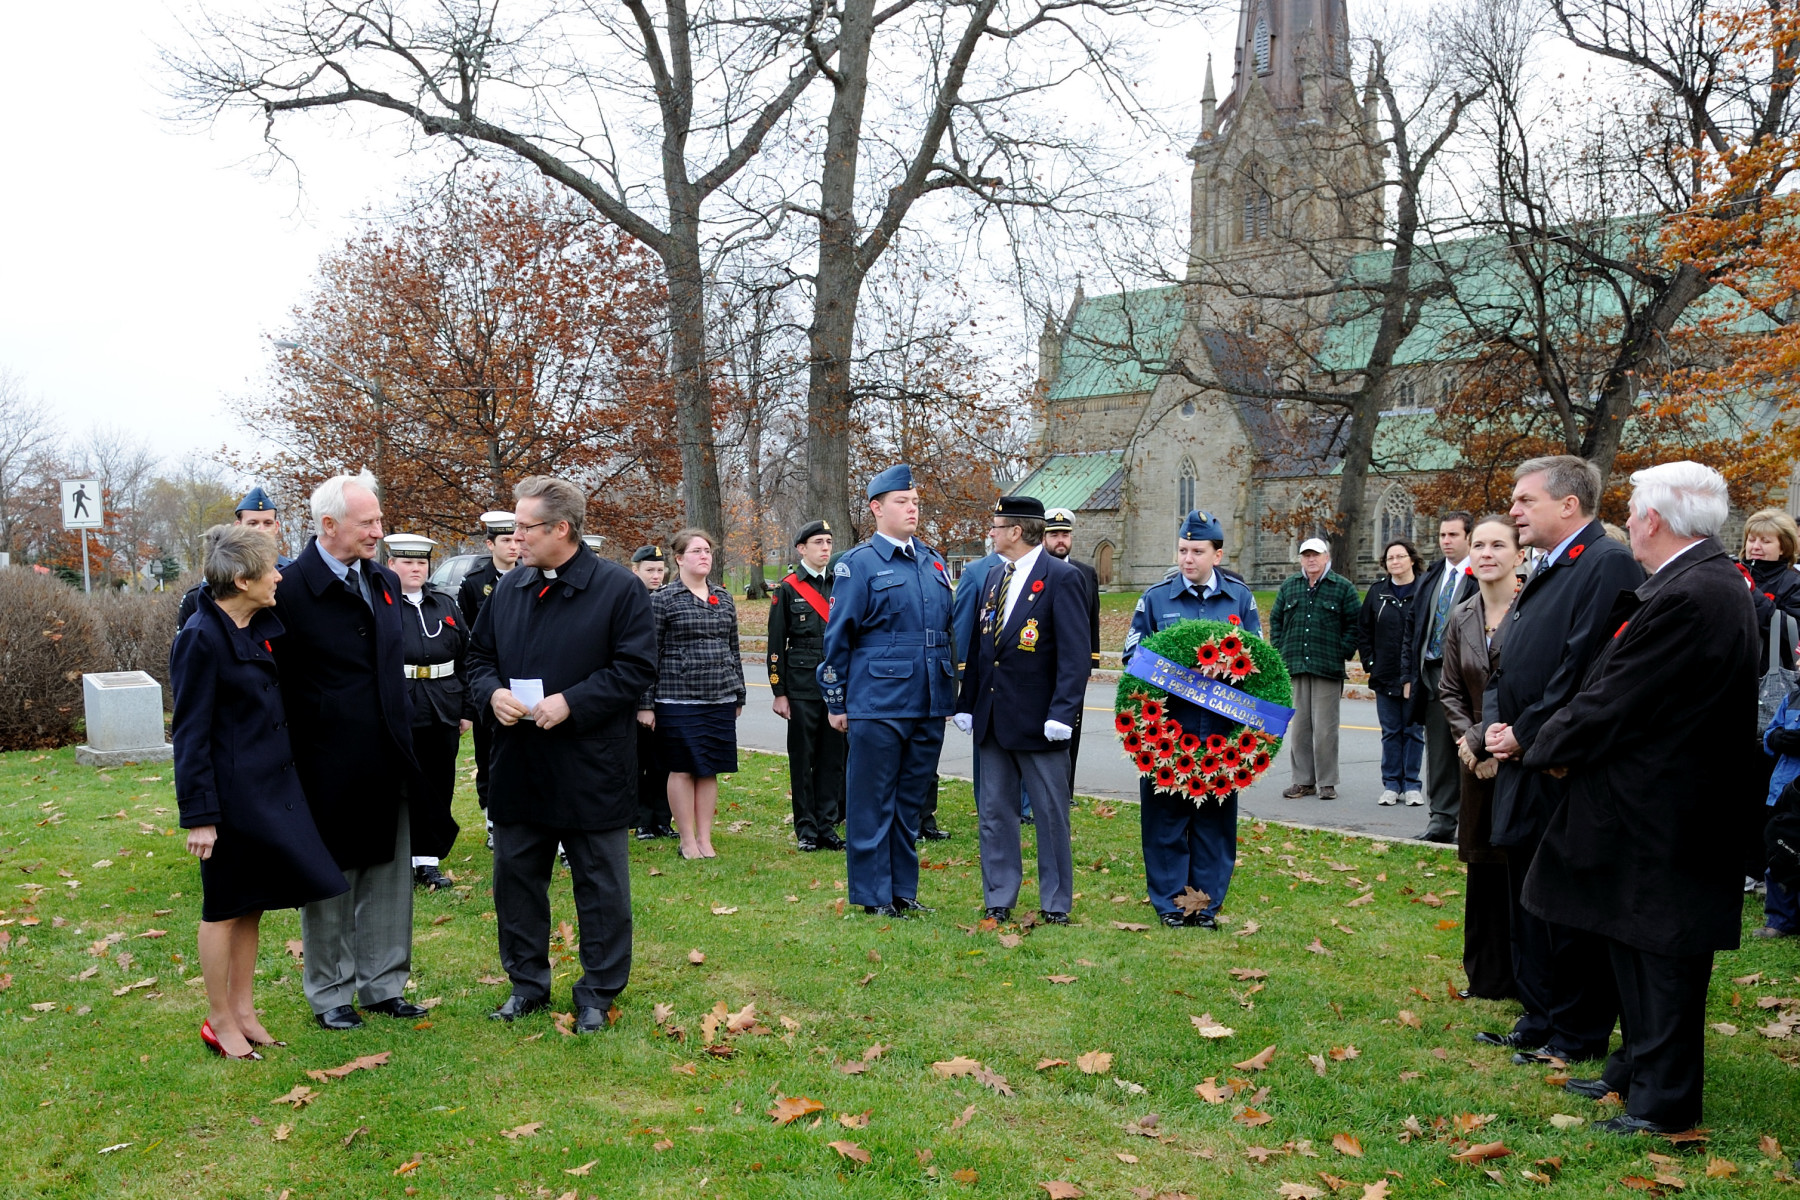 On the eve of Remembrance Day, Their Excellencies laid a wreath at Fredericton's Provincial Cenotaph.